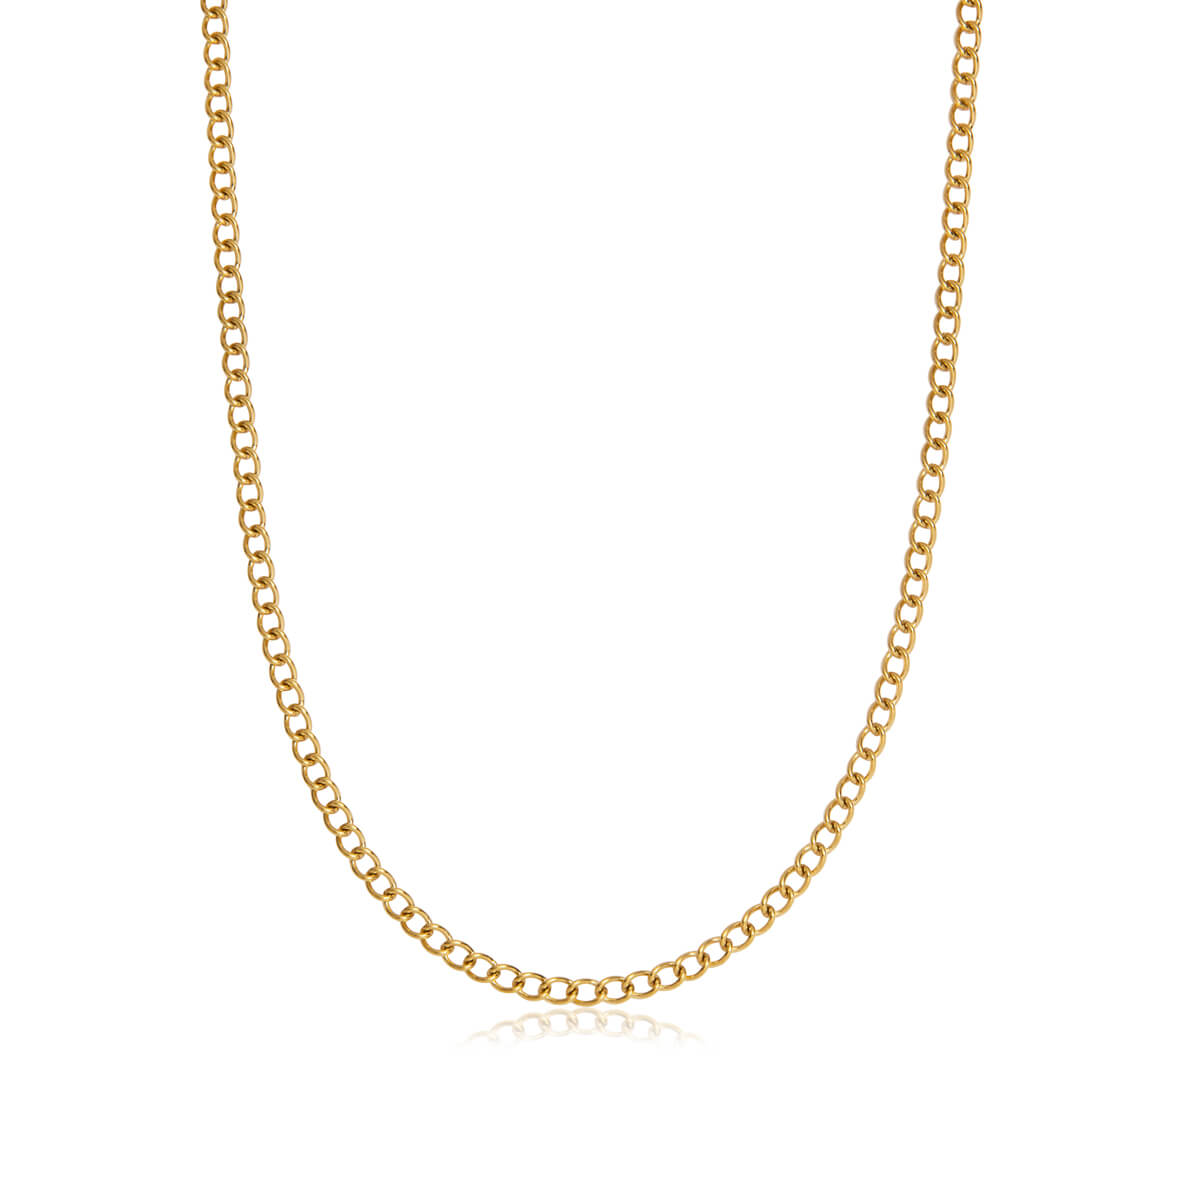 Selected Curb Chain Necklace 20 in (Brass)